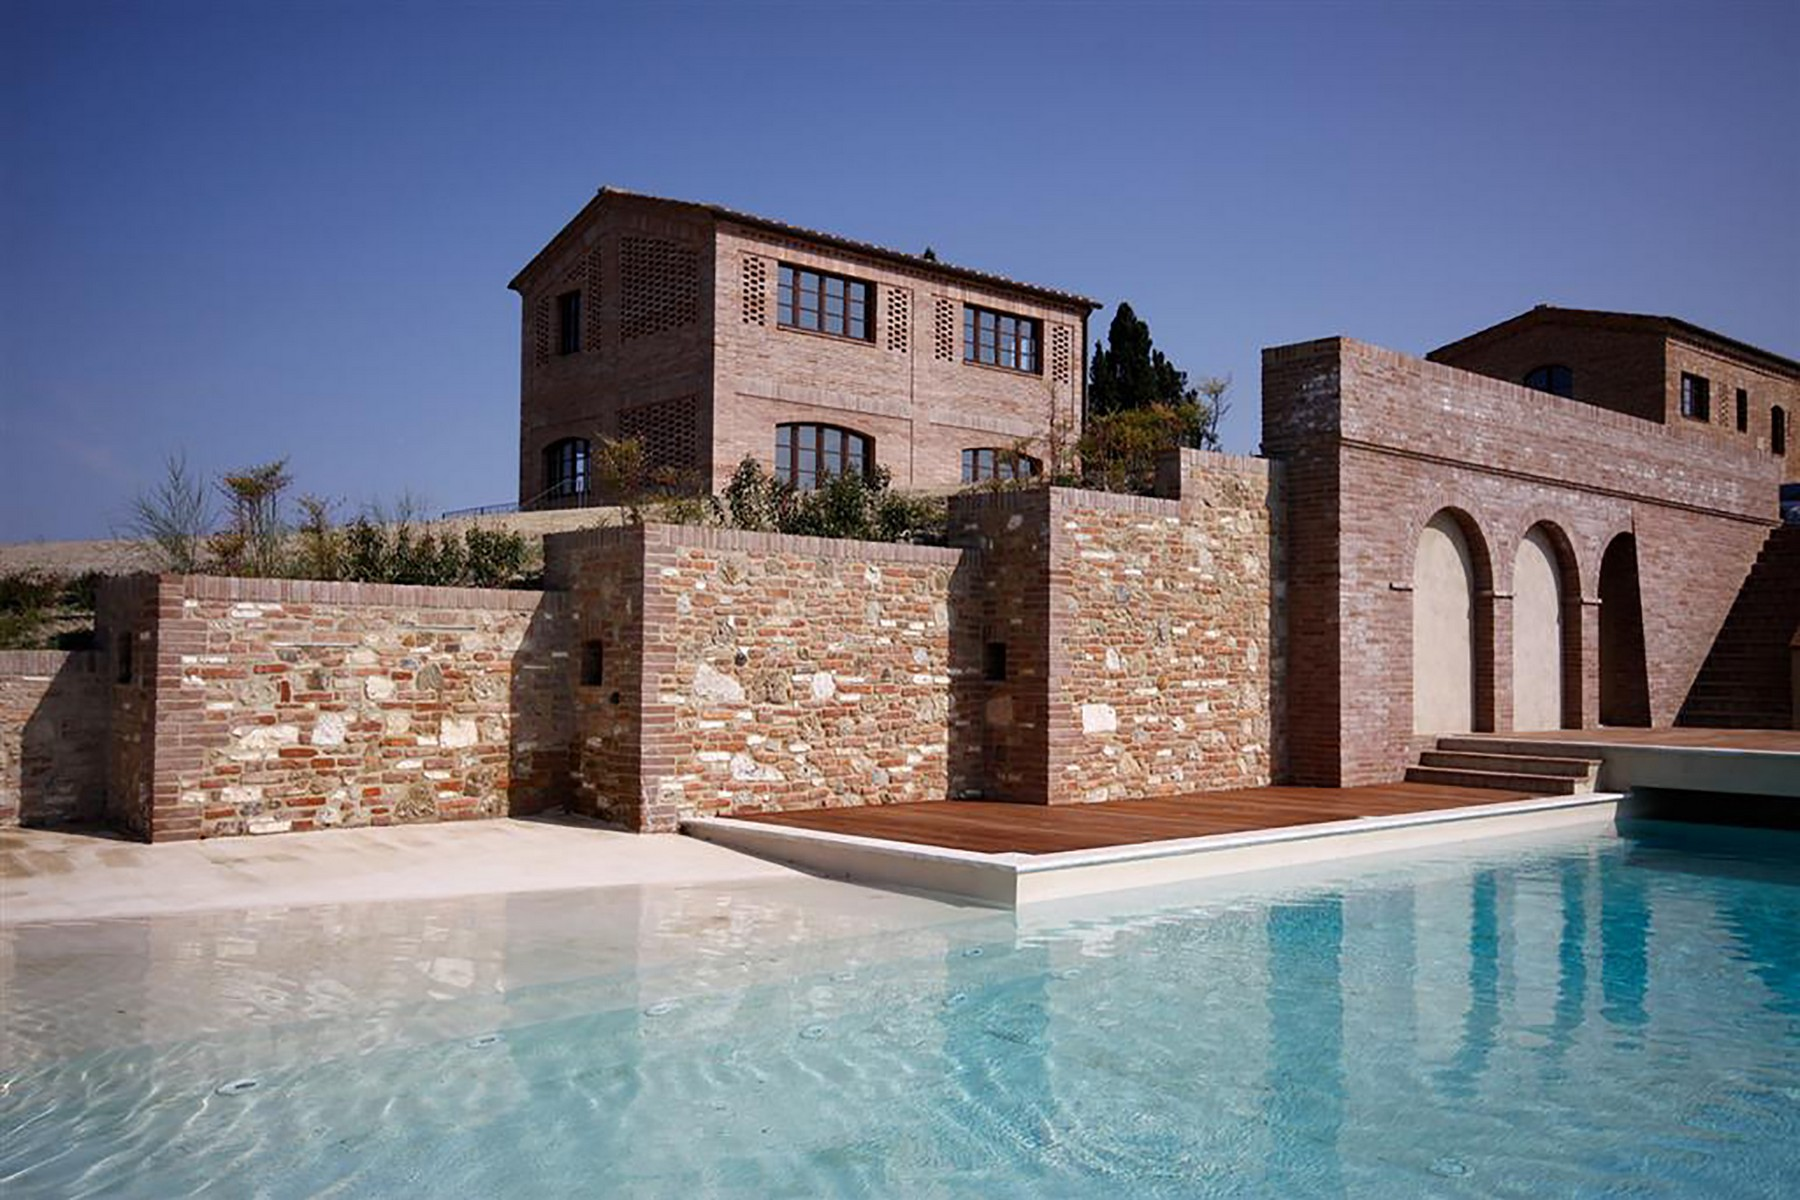 Unique family home with breath taking views of the crete senesi